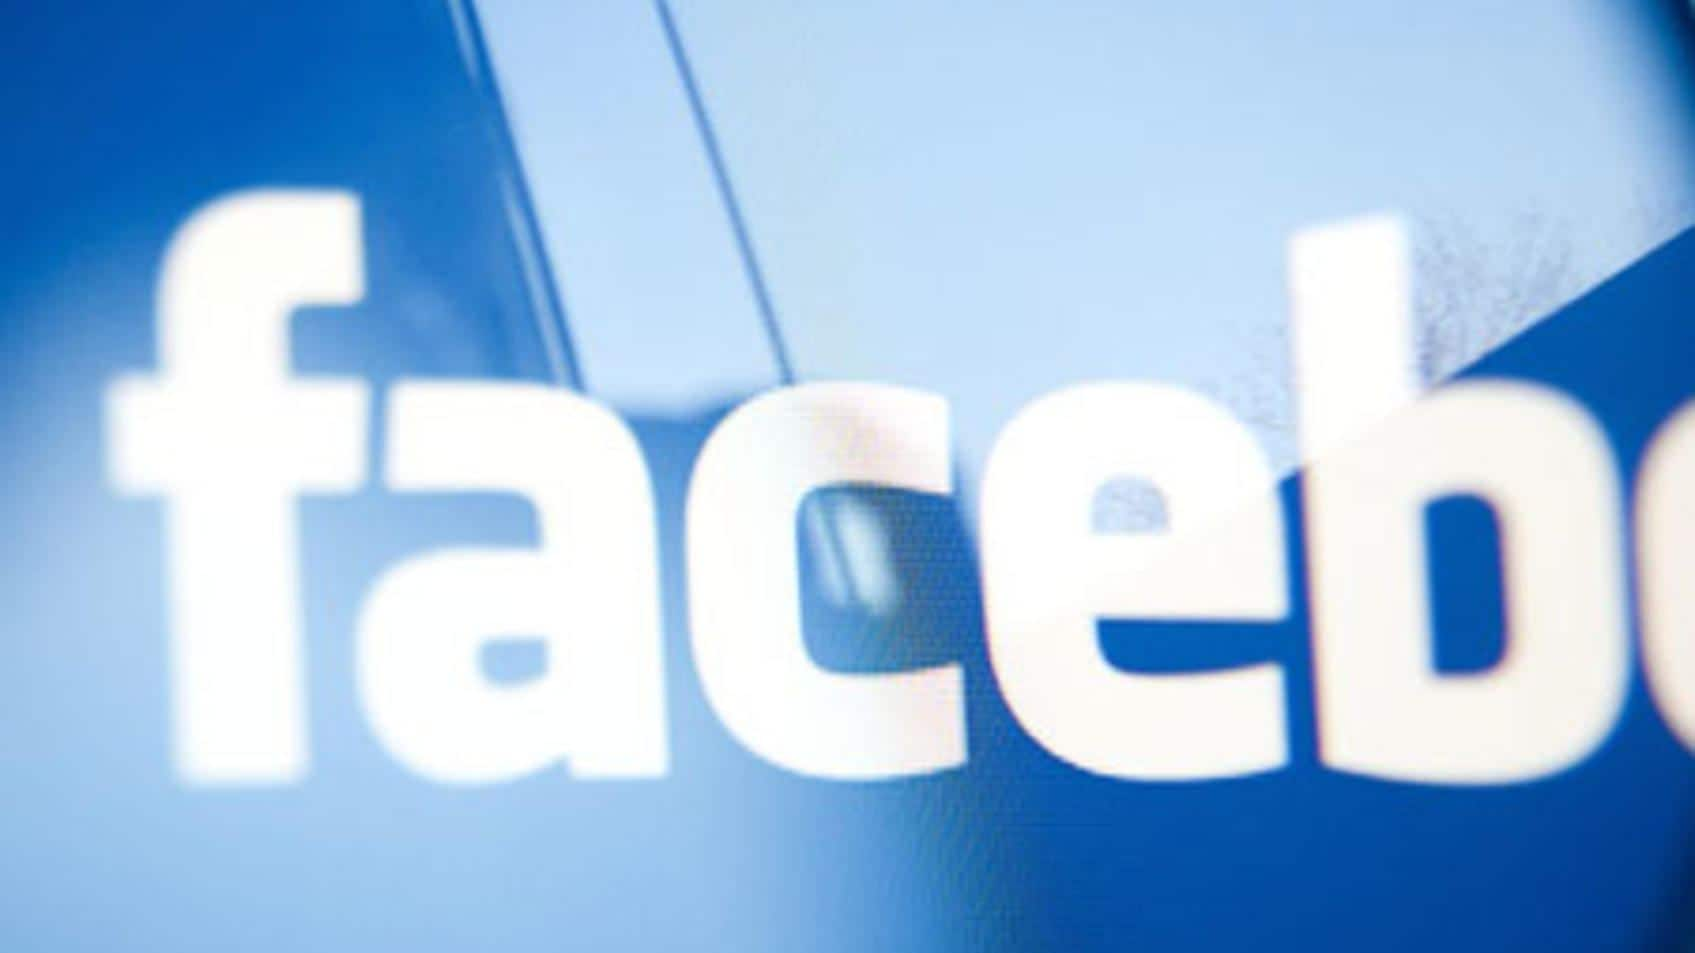 Facebook-IPO: Am 18. Mai soll der Run beginnen